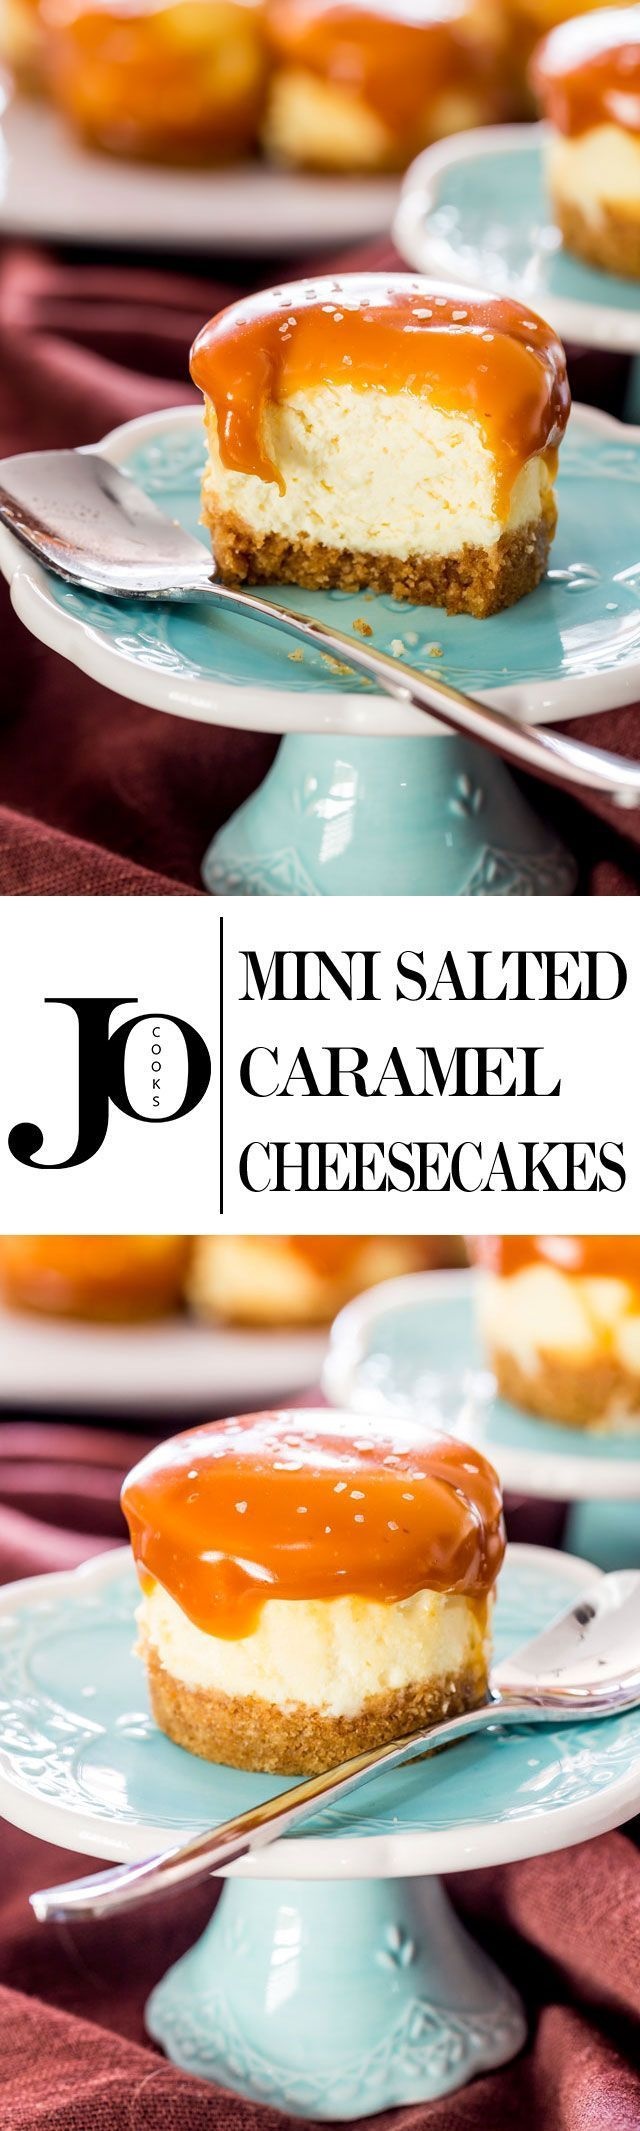 Mini Salted Caramel Cheesecakes - creamy bite-sized cheesecakes with a graham cracker crust and topped with a delicious salted caramel sauce